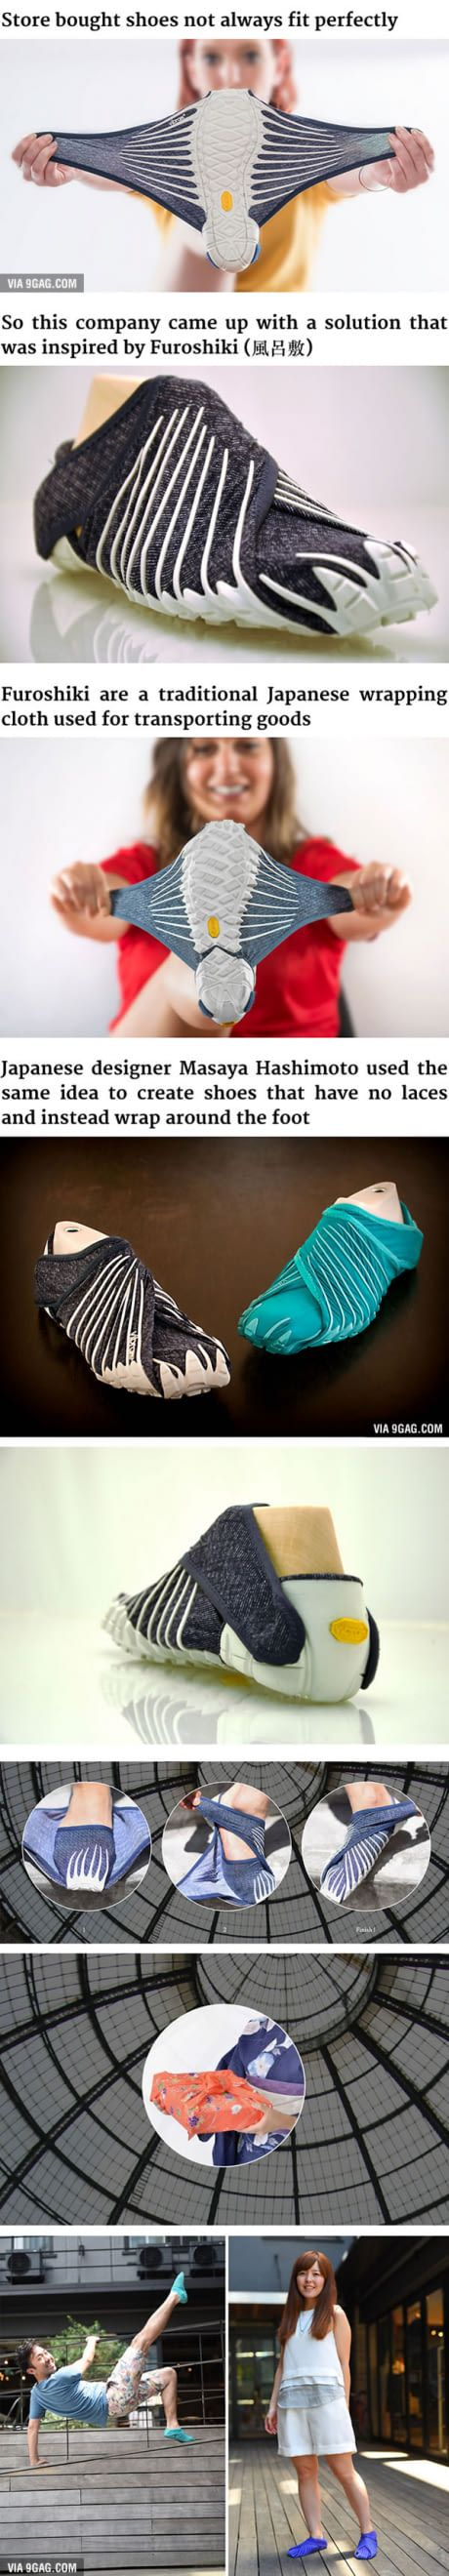 These New Japanese-Inspired Shoes Can Wrap Around Your Feet